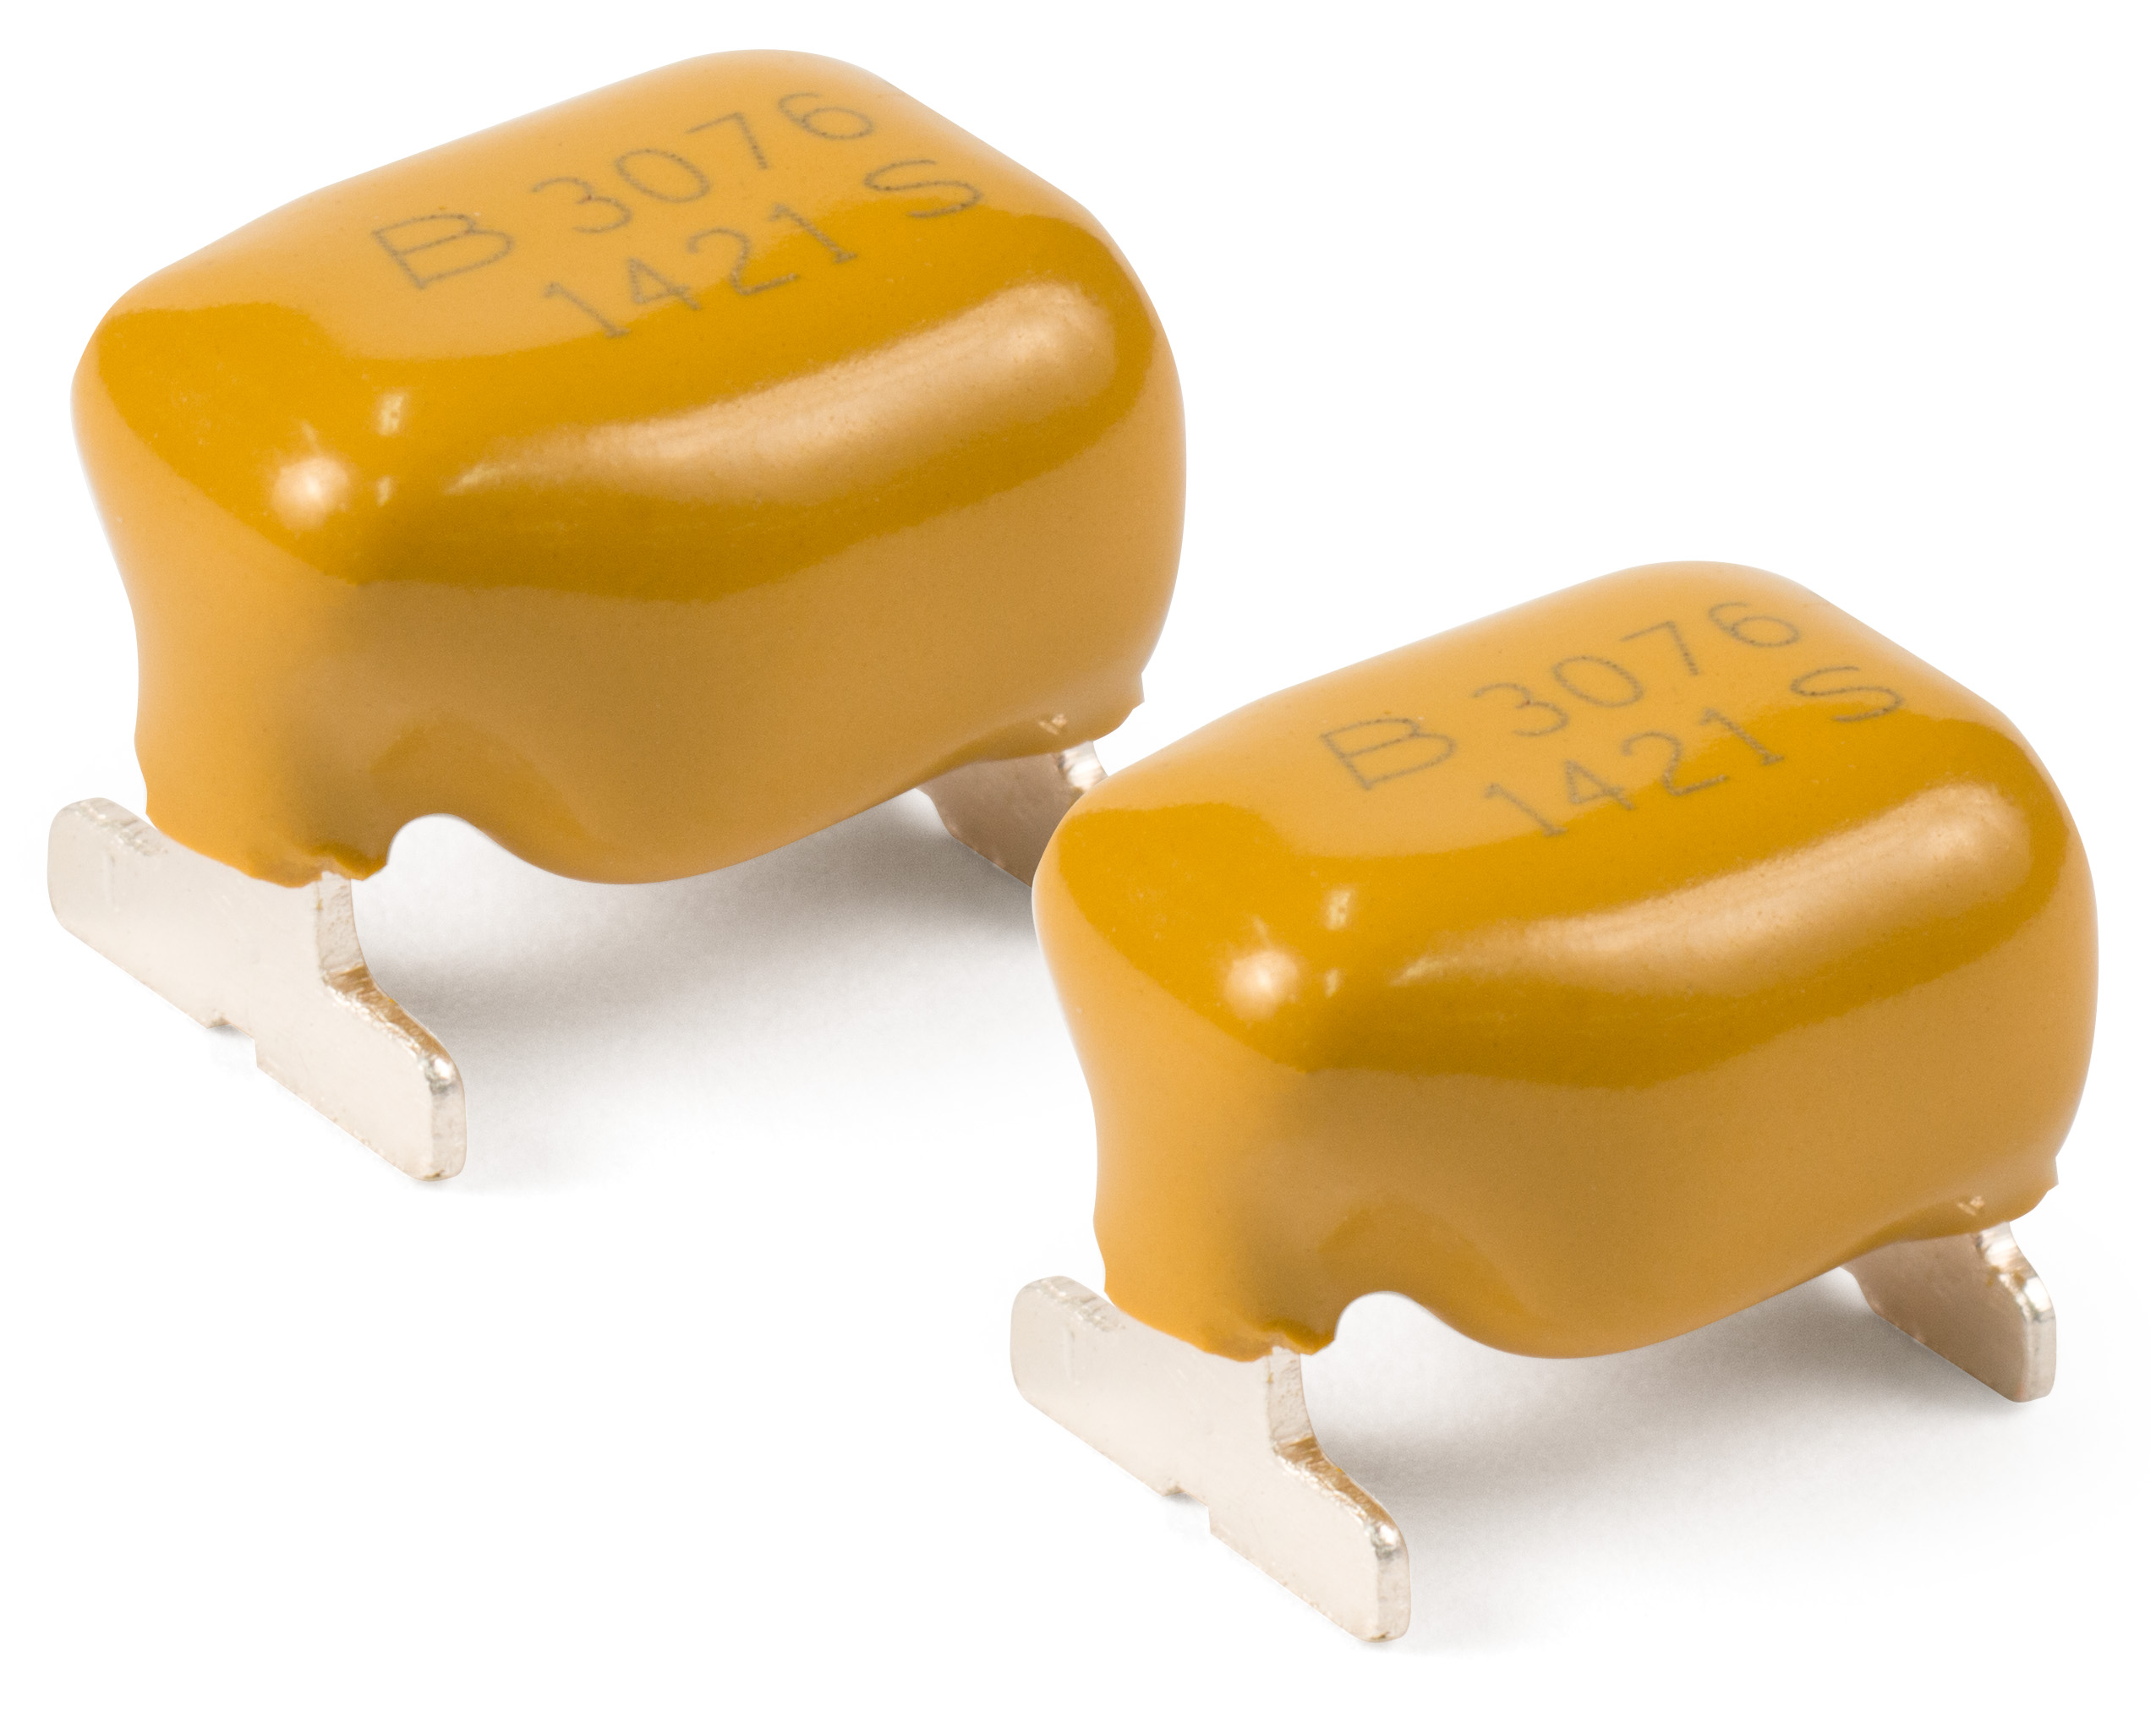 Bourns - Bourns Announces New High Power TVS Diodes in SMD